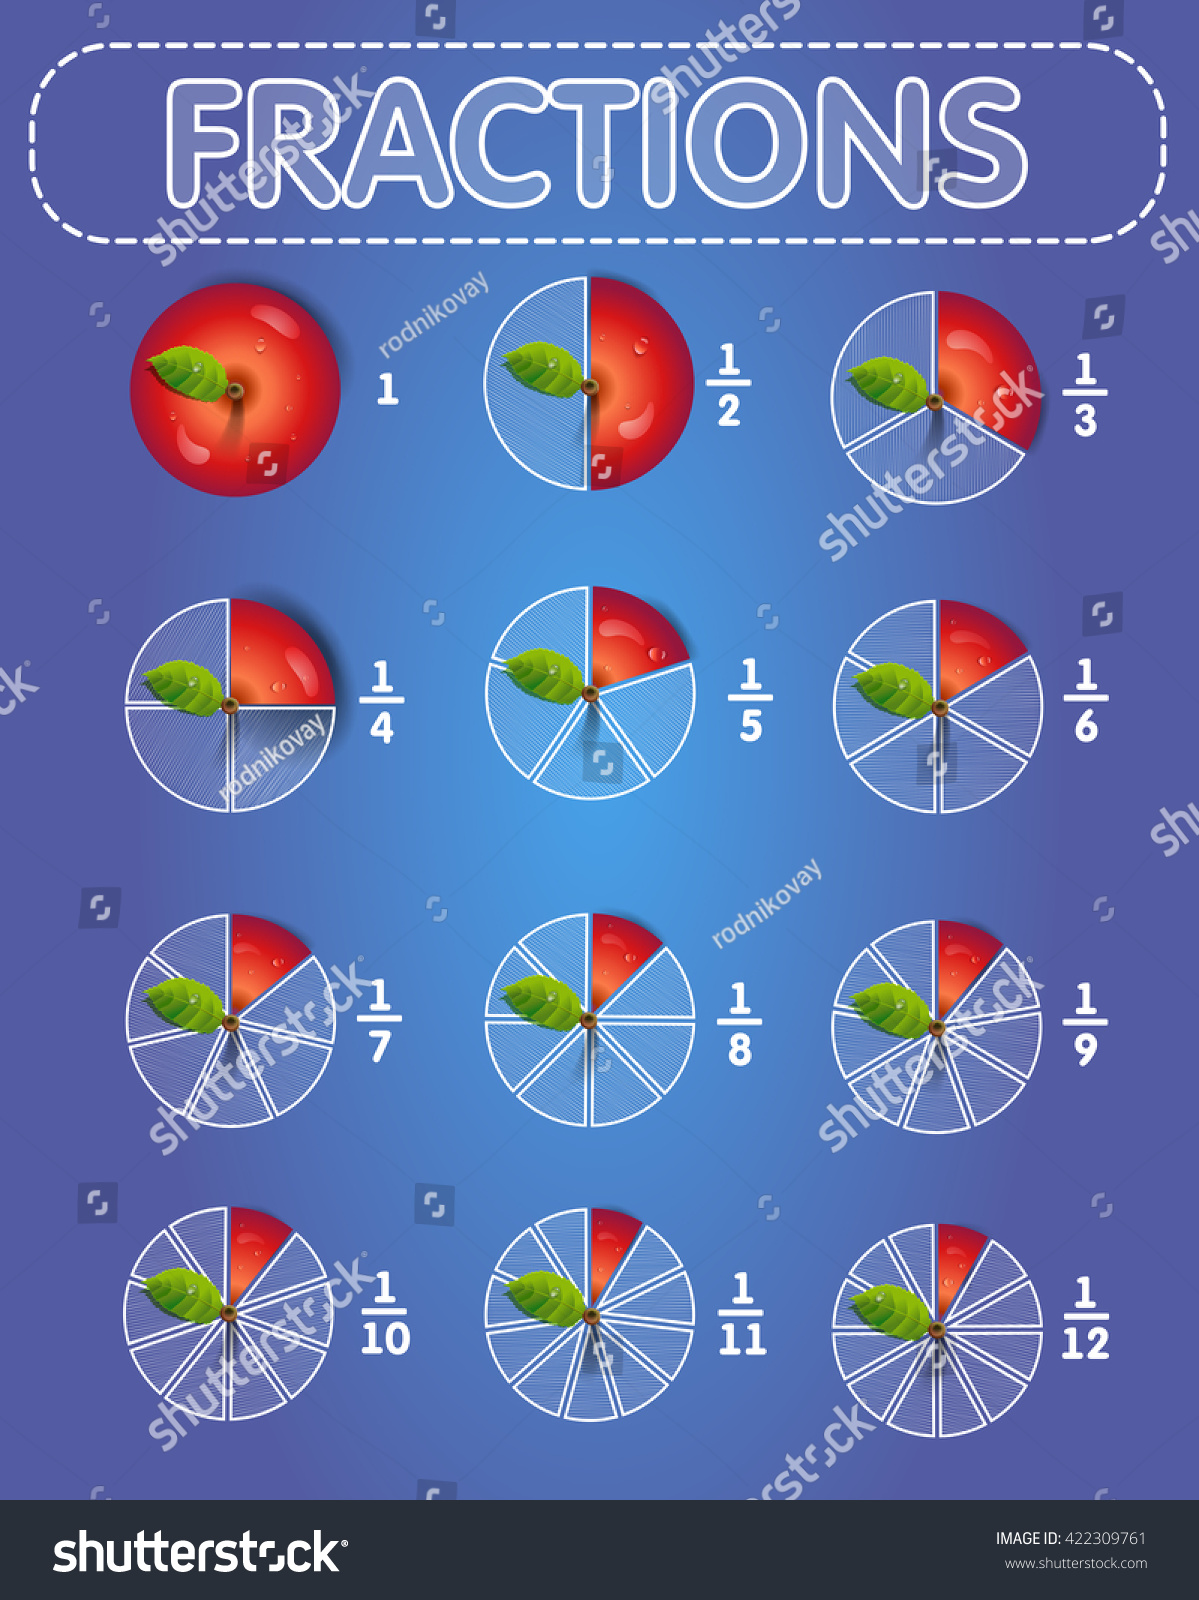 Fraction pie chart image collections free any chart examples fraction pie chart gallery free any chart examples 12 piece pie chart choice image free any nvjuhfo Images